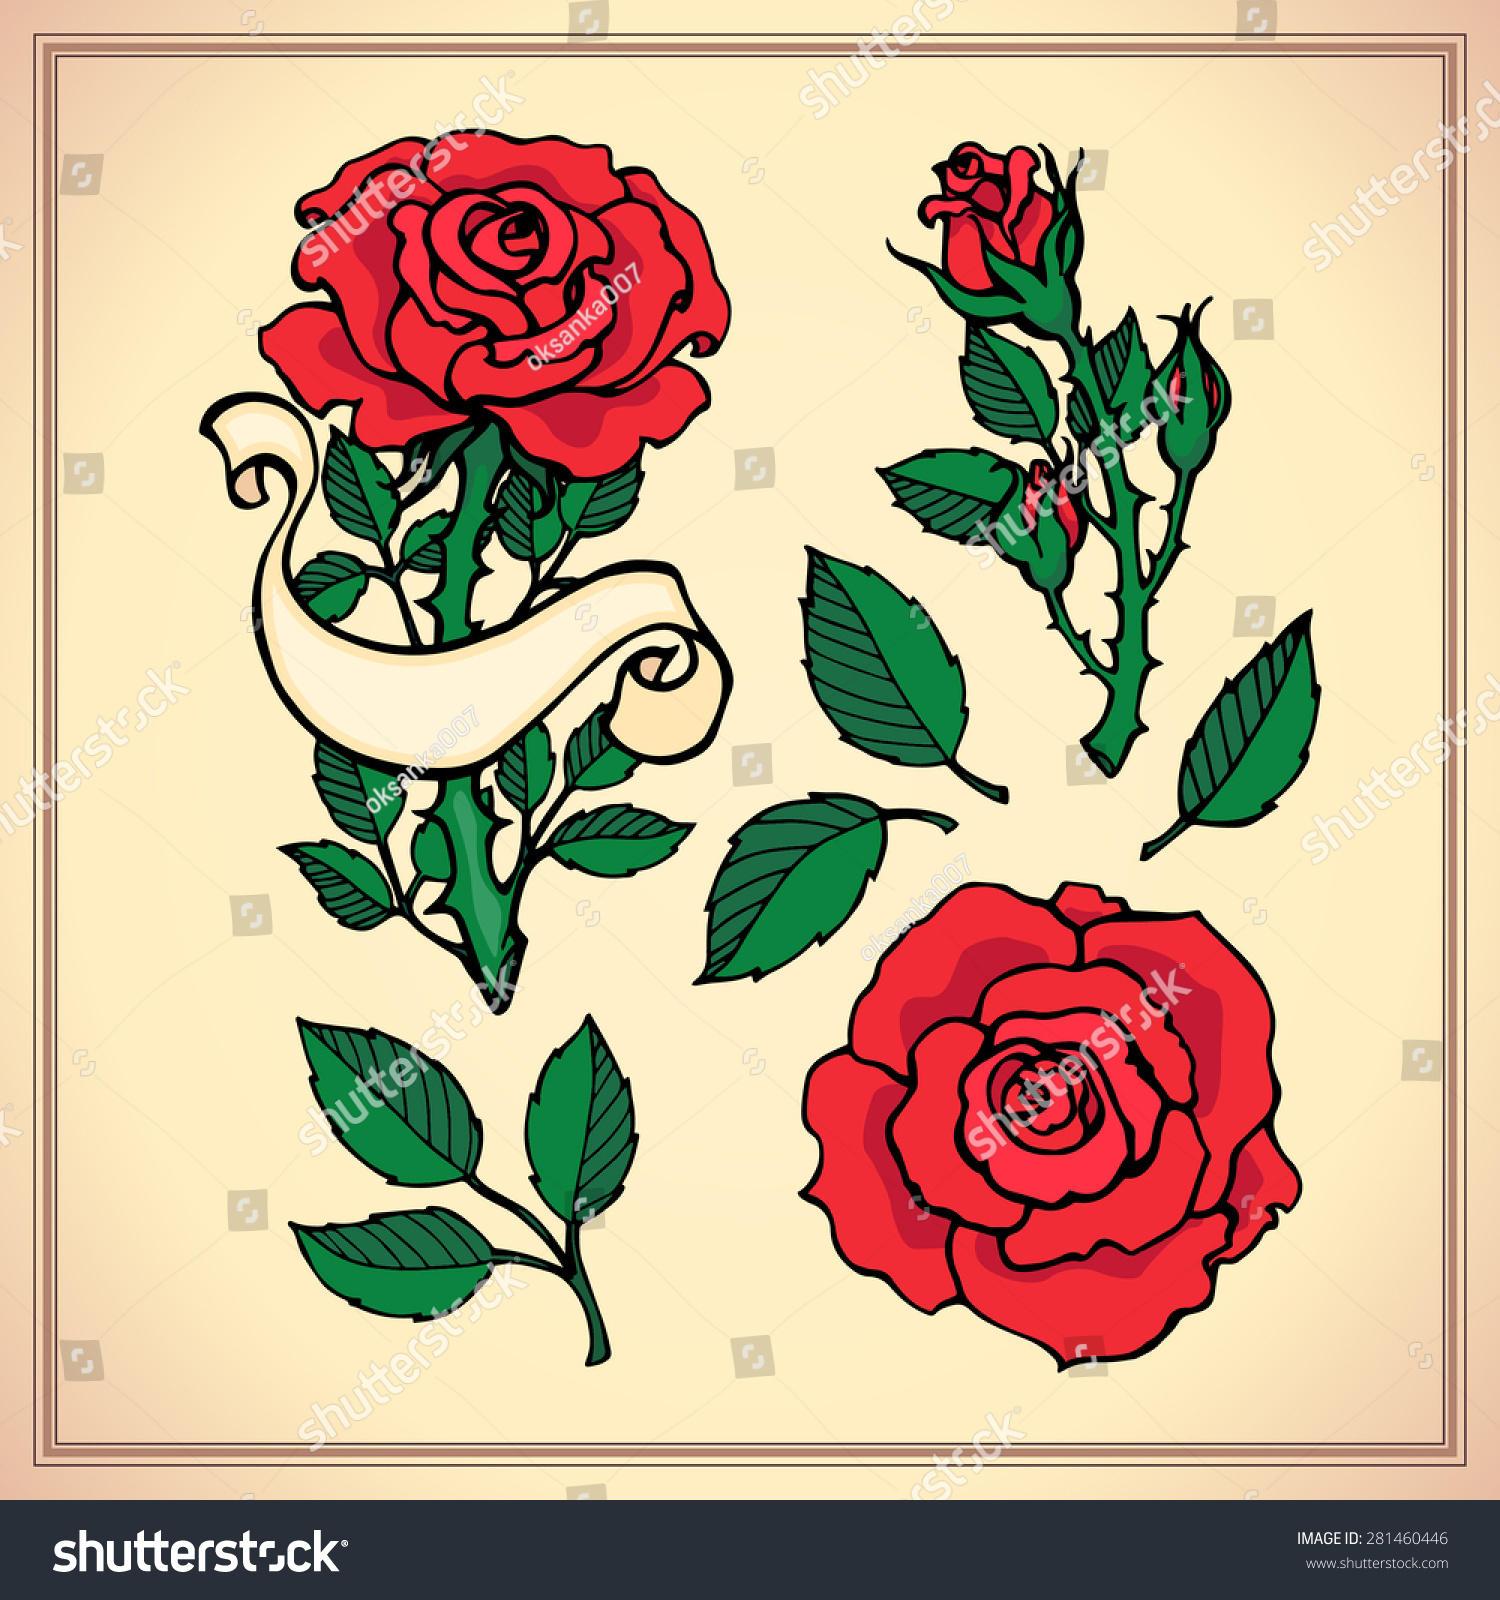 Tattoo Set Graphic Vector Illustration Roses Stock Vector (Royalty ...